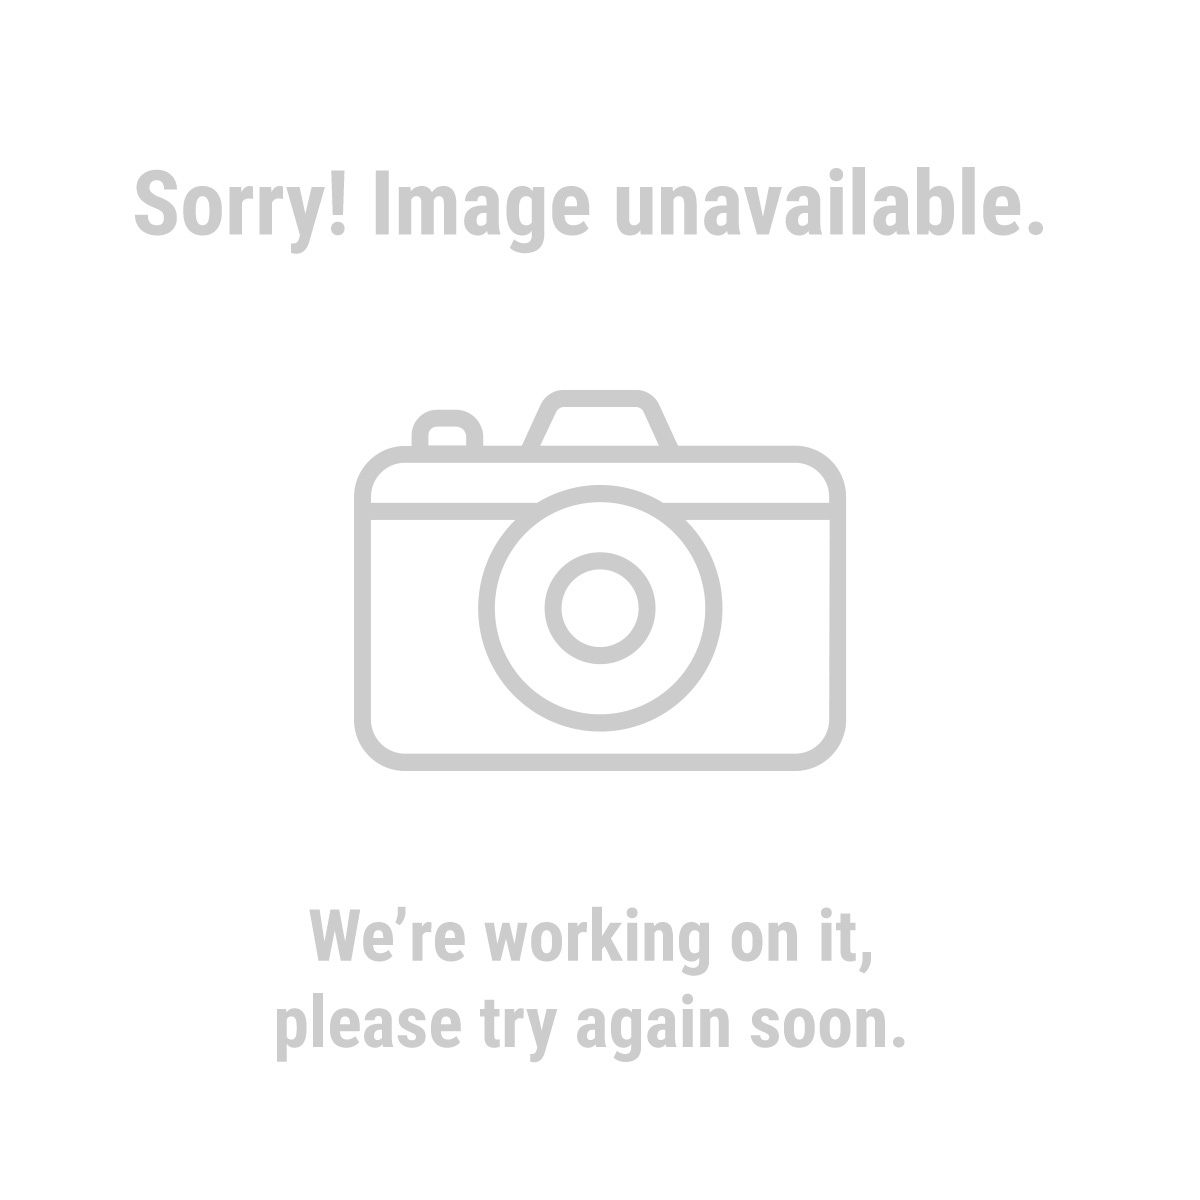 Gordon 7345 Combination Sharpening Stone